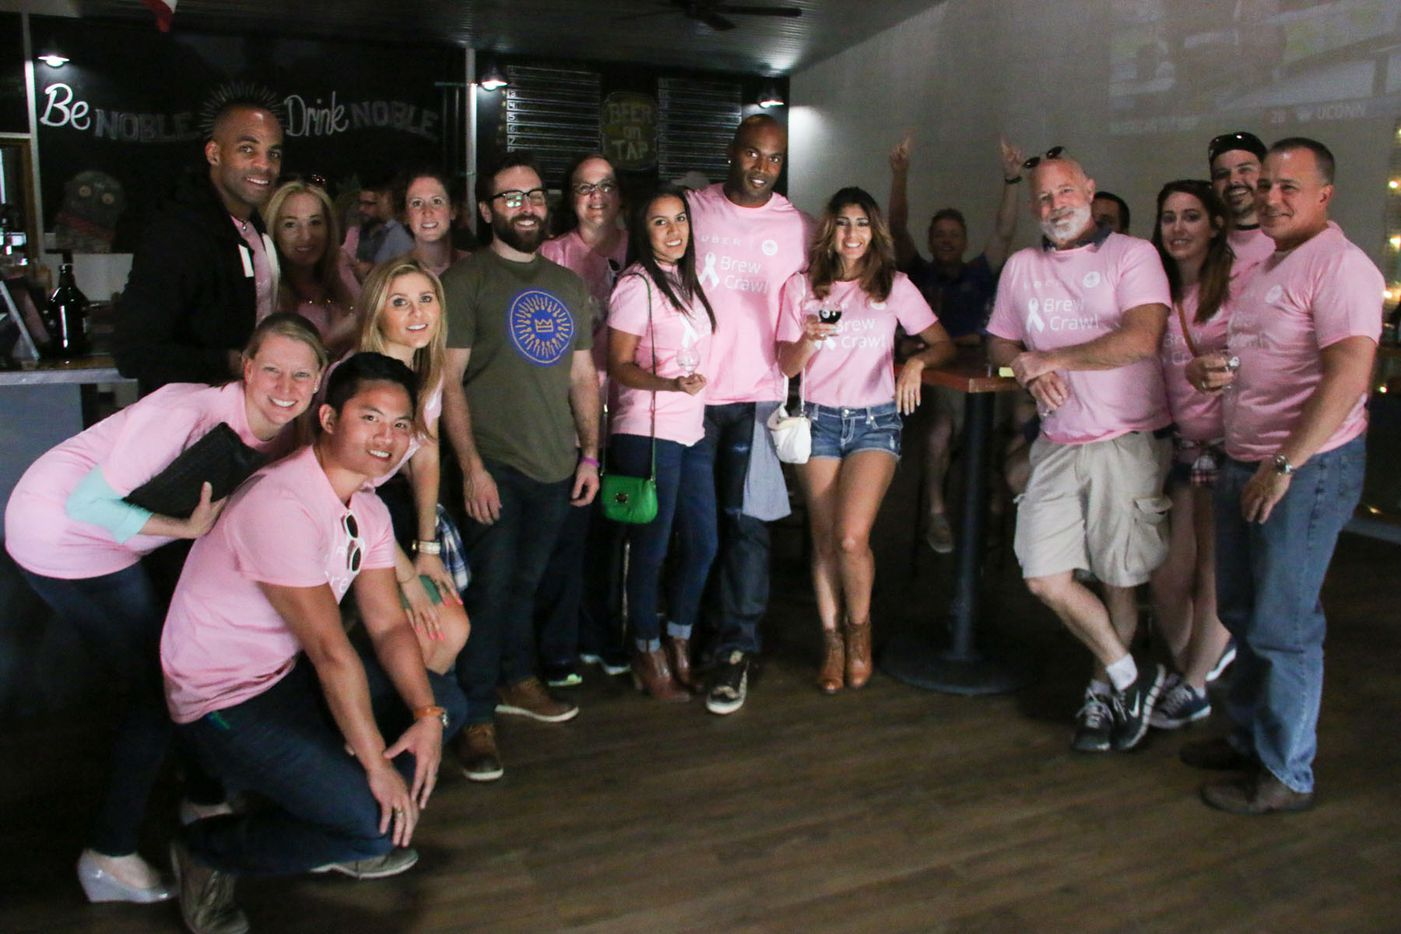 Bradie James (center) posed with Brew Crawl participants during the inaugural Brew Crawl for Breast Cancer on Saturday in Dallas. The event was put on by Dallas Brew Scene, with all proceeds benefiting James' Foundation 56 breast cancer nonprofit.